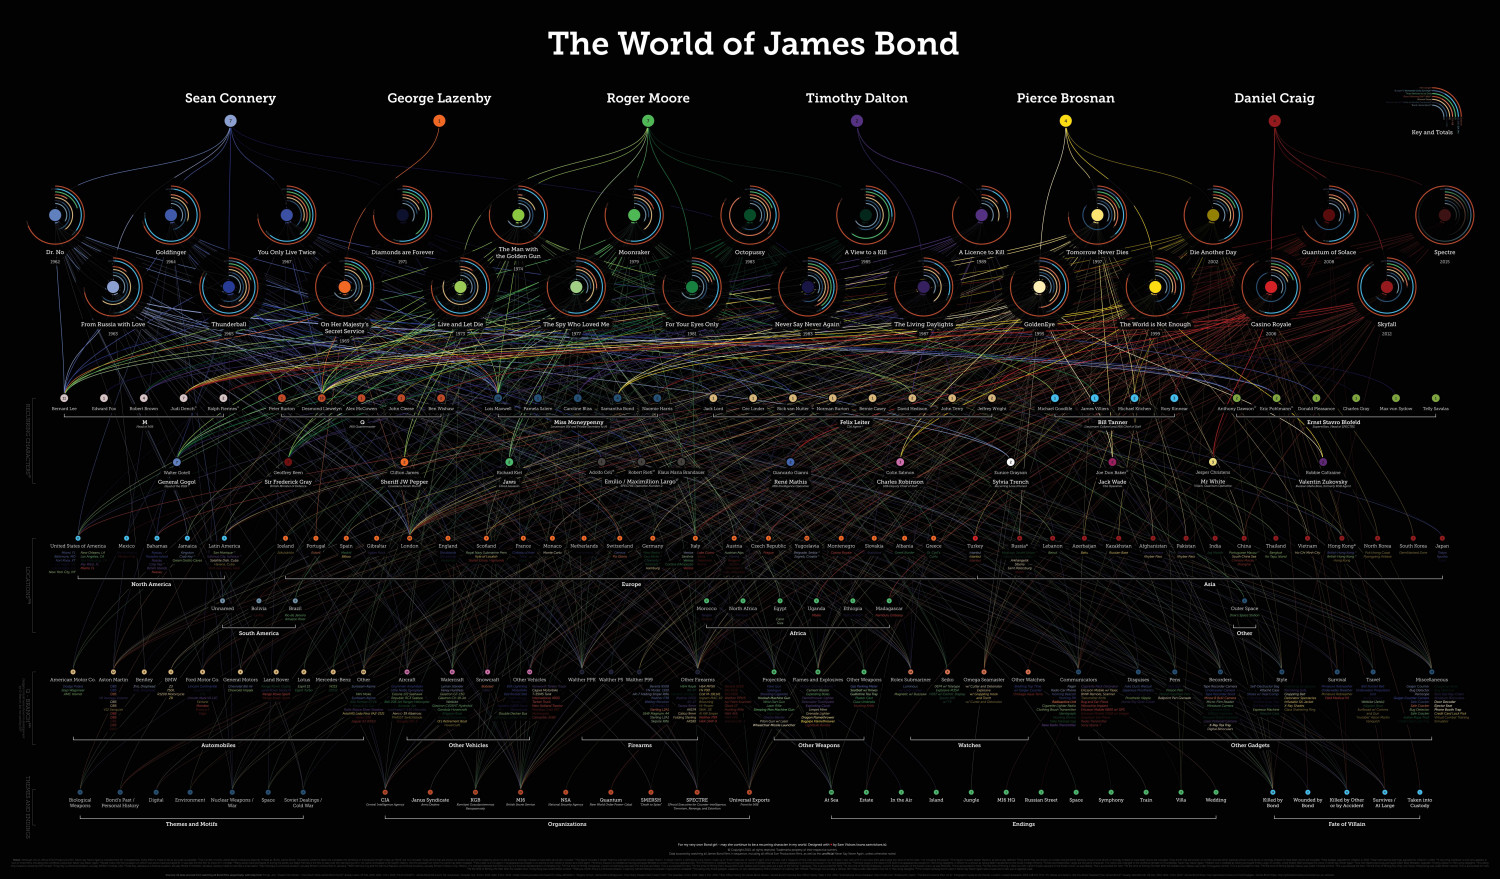 The World of James Bond Infographic